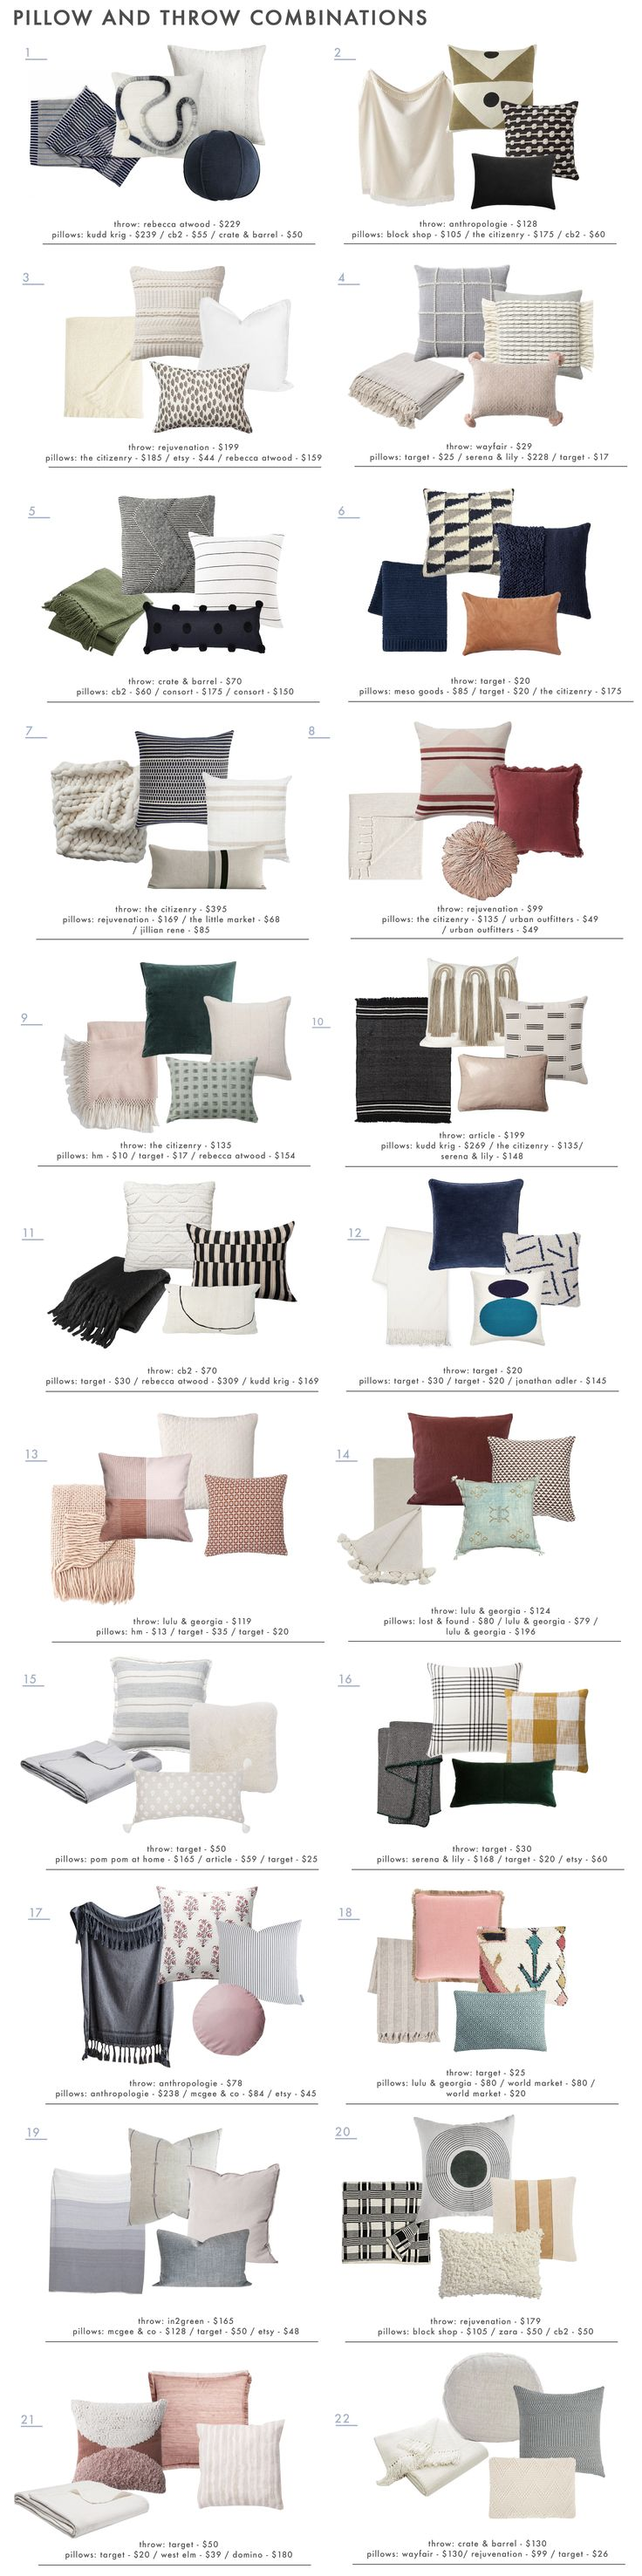 mix and match throw pillows and blankets